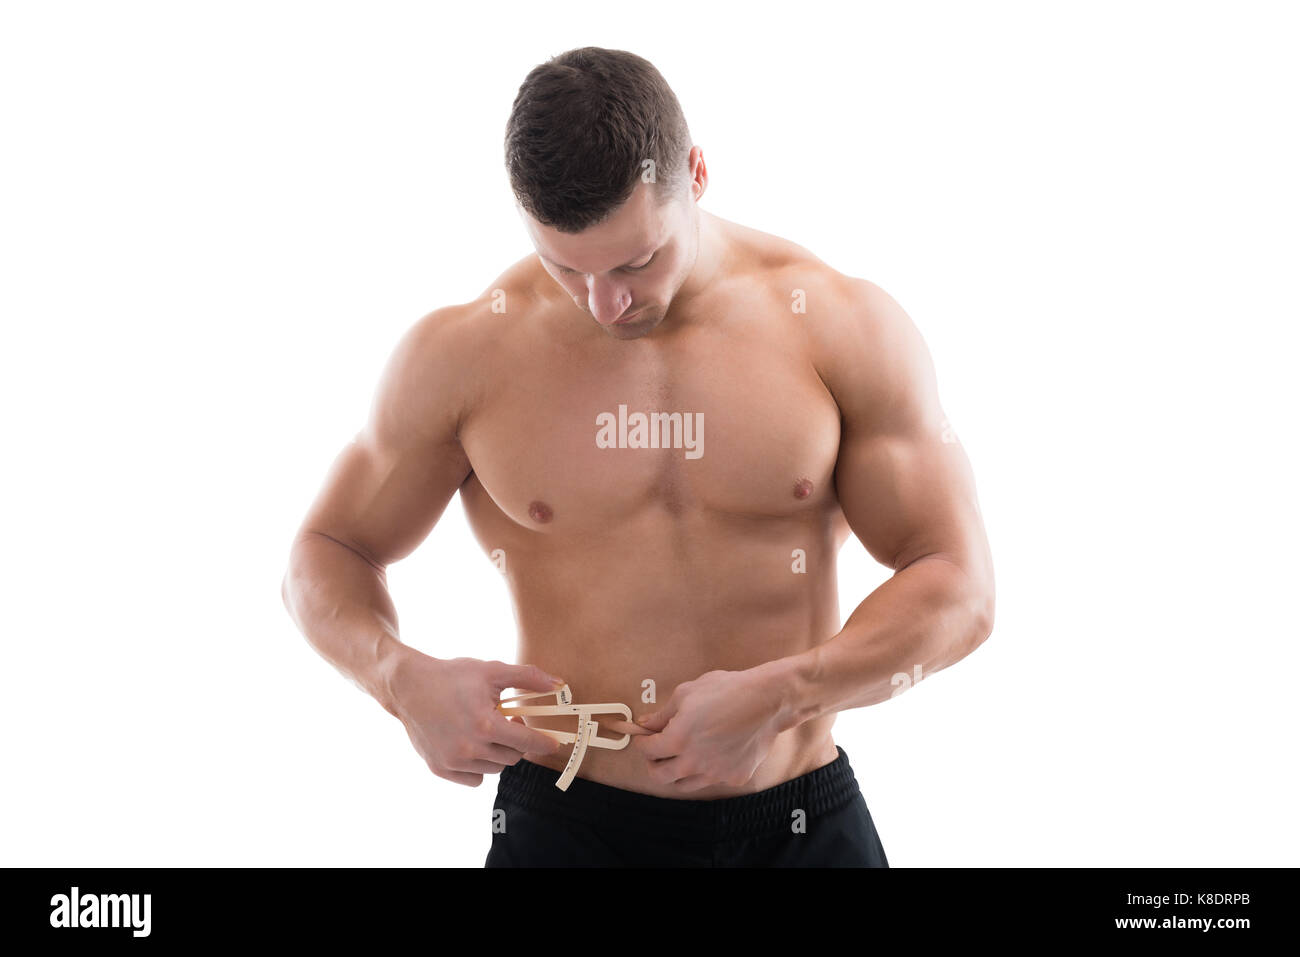 Mid adult muscular man measuring fats with caliper against white background - Stock Image